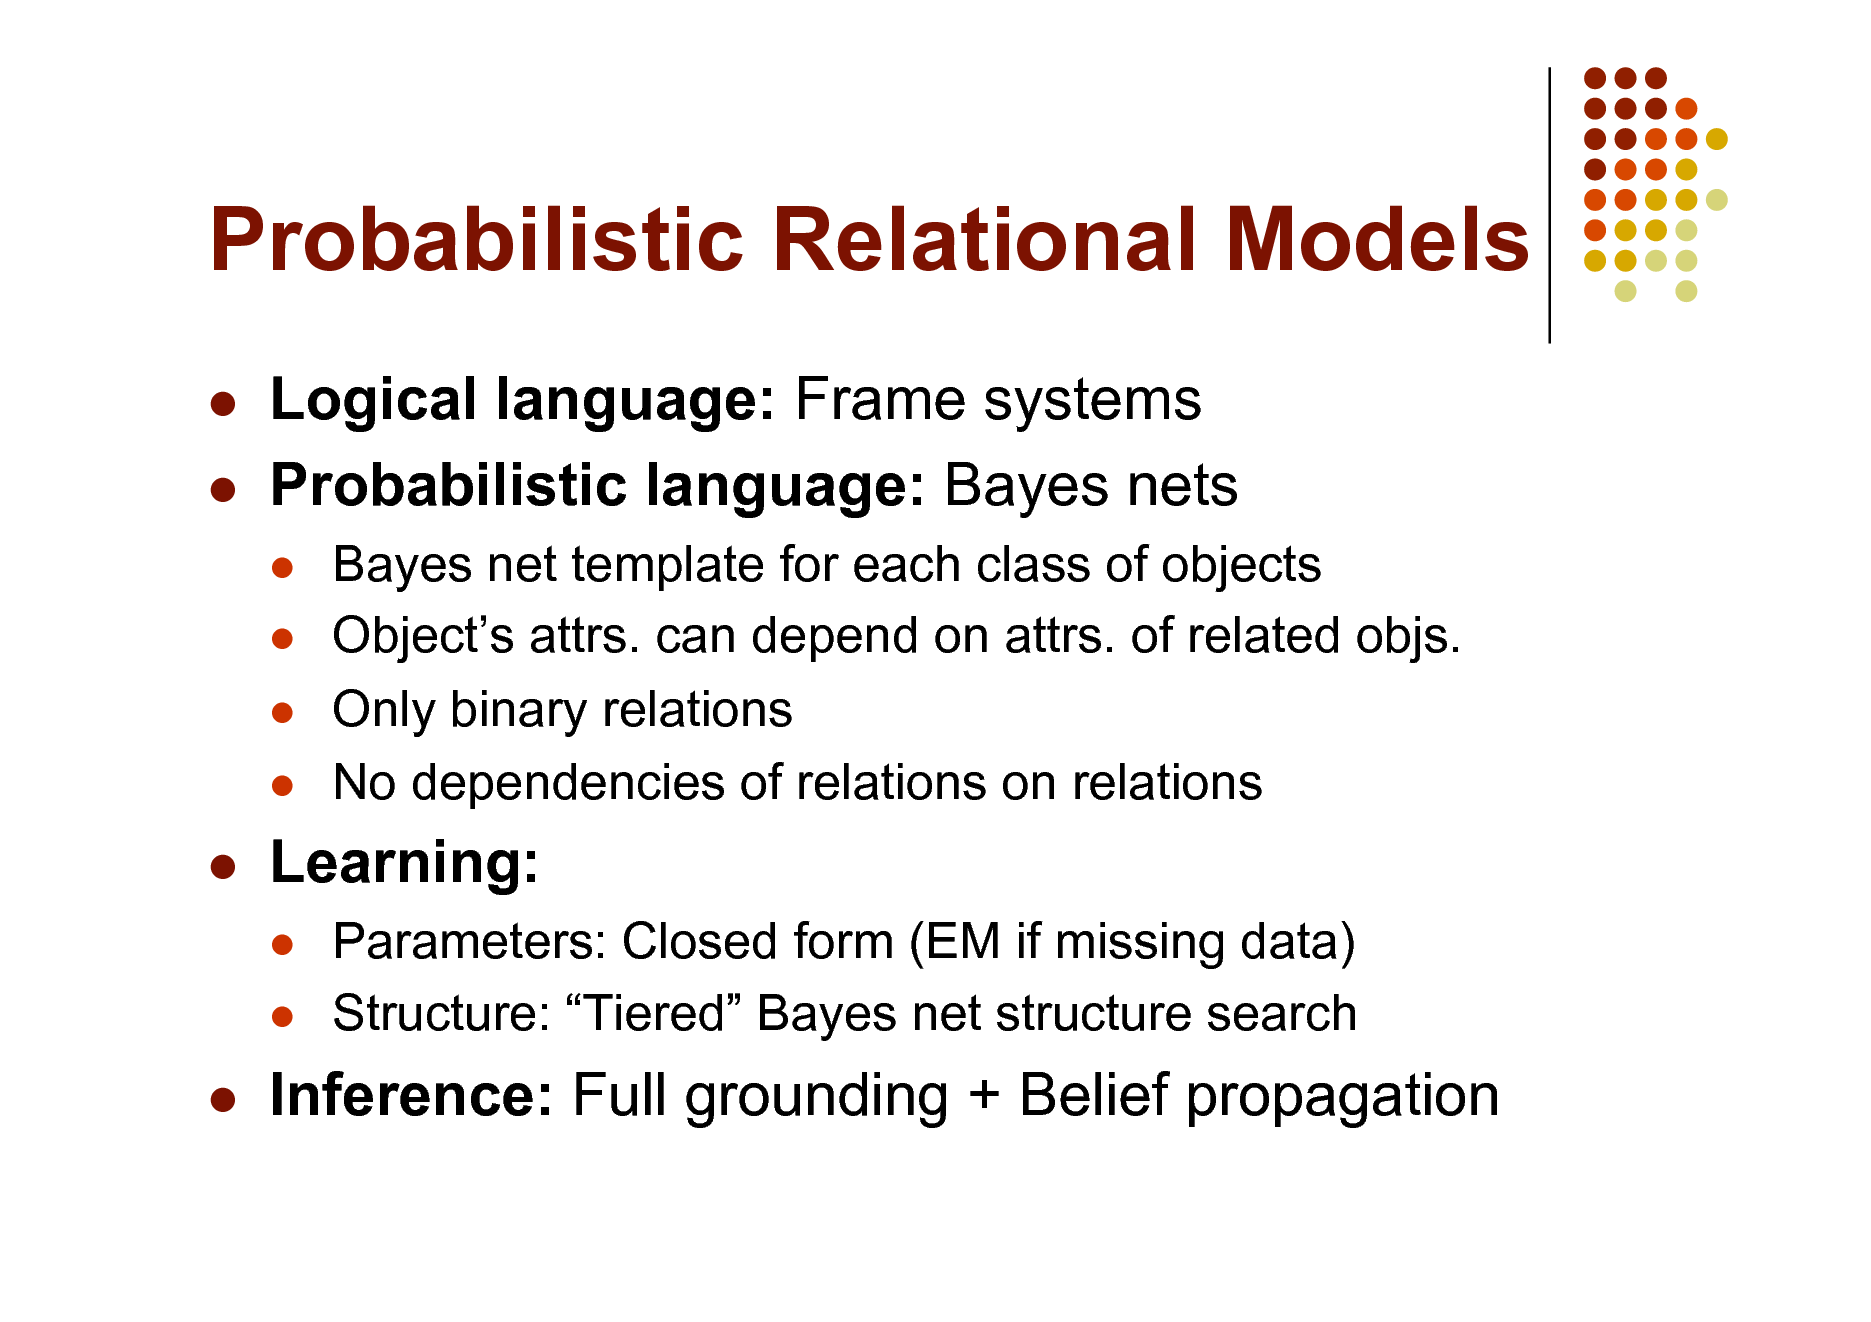 Slide: Probabilistic Relational Models    Logical language: Frame systems Probabilistic language: Bayes nets      Bayes net template for each class of objects Objects attrs. can depend on attrs. of related objs. Only binary relations No dependencies of relations on relations Parameters: Closed form (EM if missing data) Structure: Tiered Bayes net structure search    Learning:      Inference: Full grounding + Belief propagation